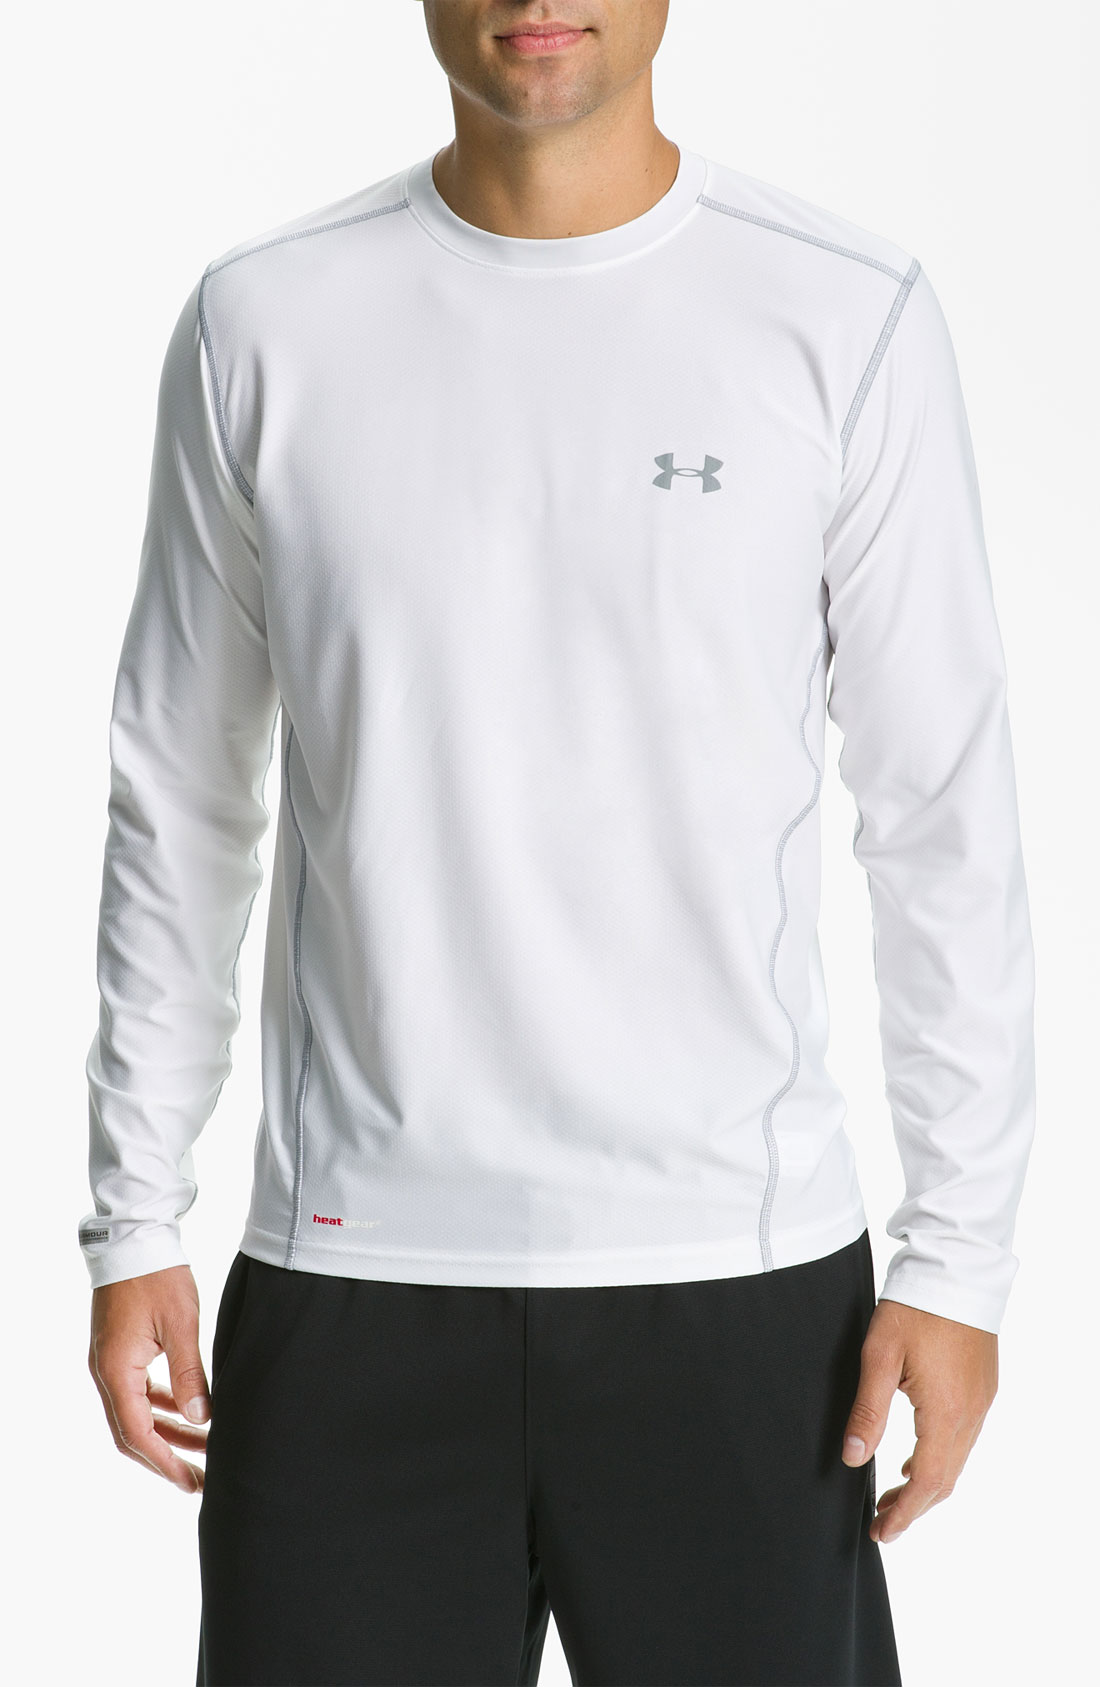 Under armour heatgear fitted long sleeve tshirt in white for Under armour heatgear white shirt